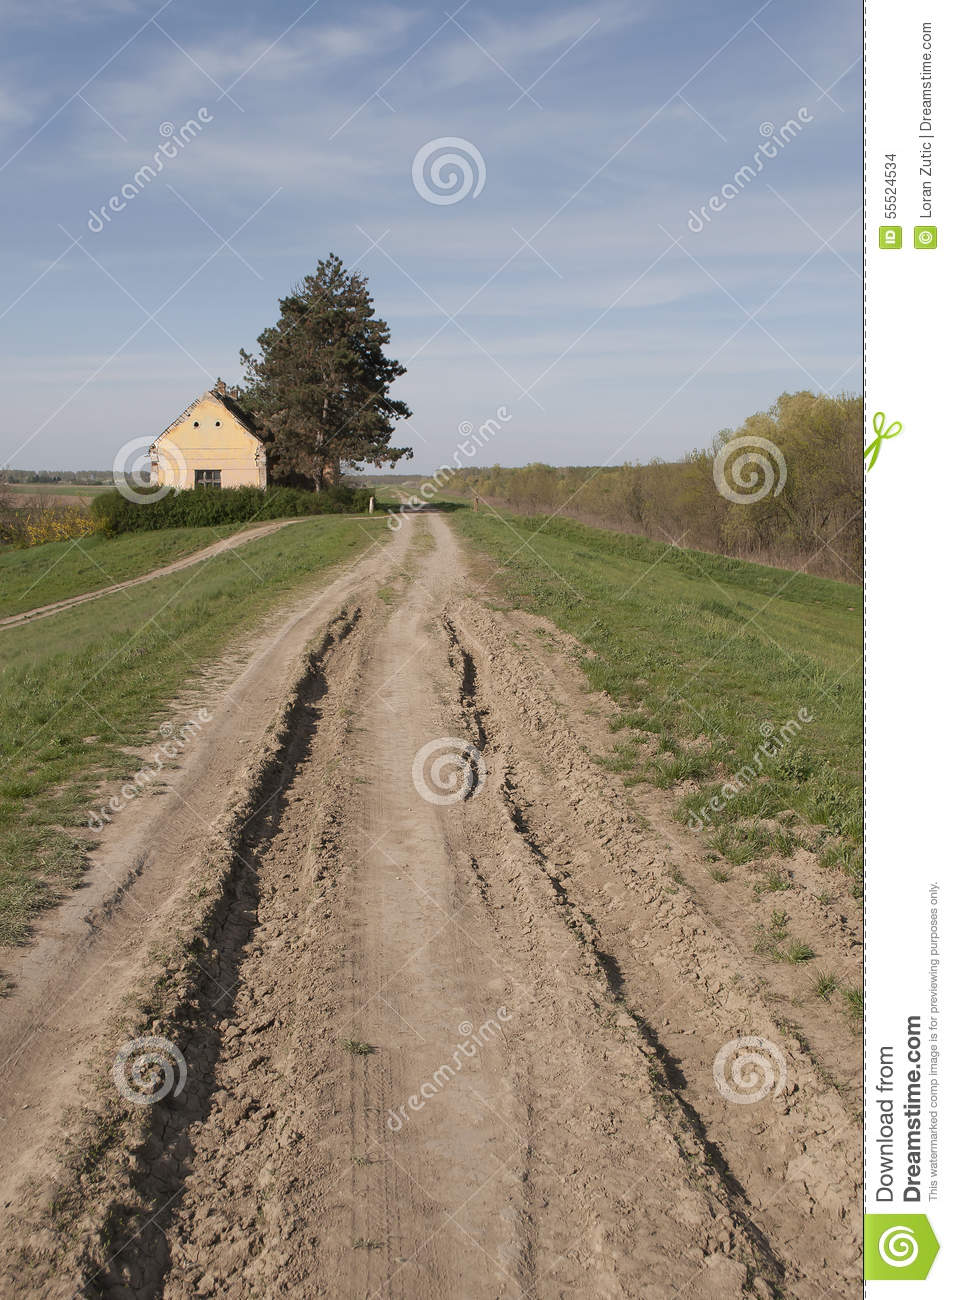 Home Time Road Roblox Id: Yellow Old Country House And Country Ground Road Stock